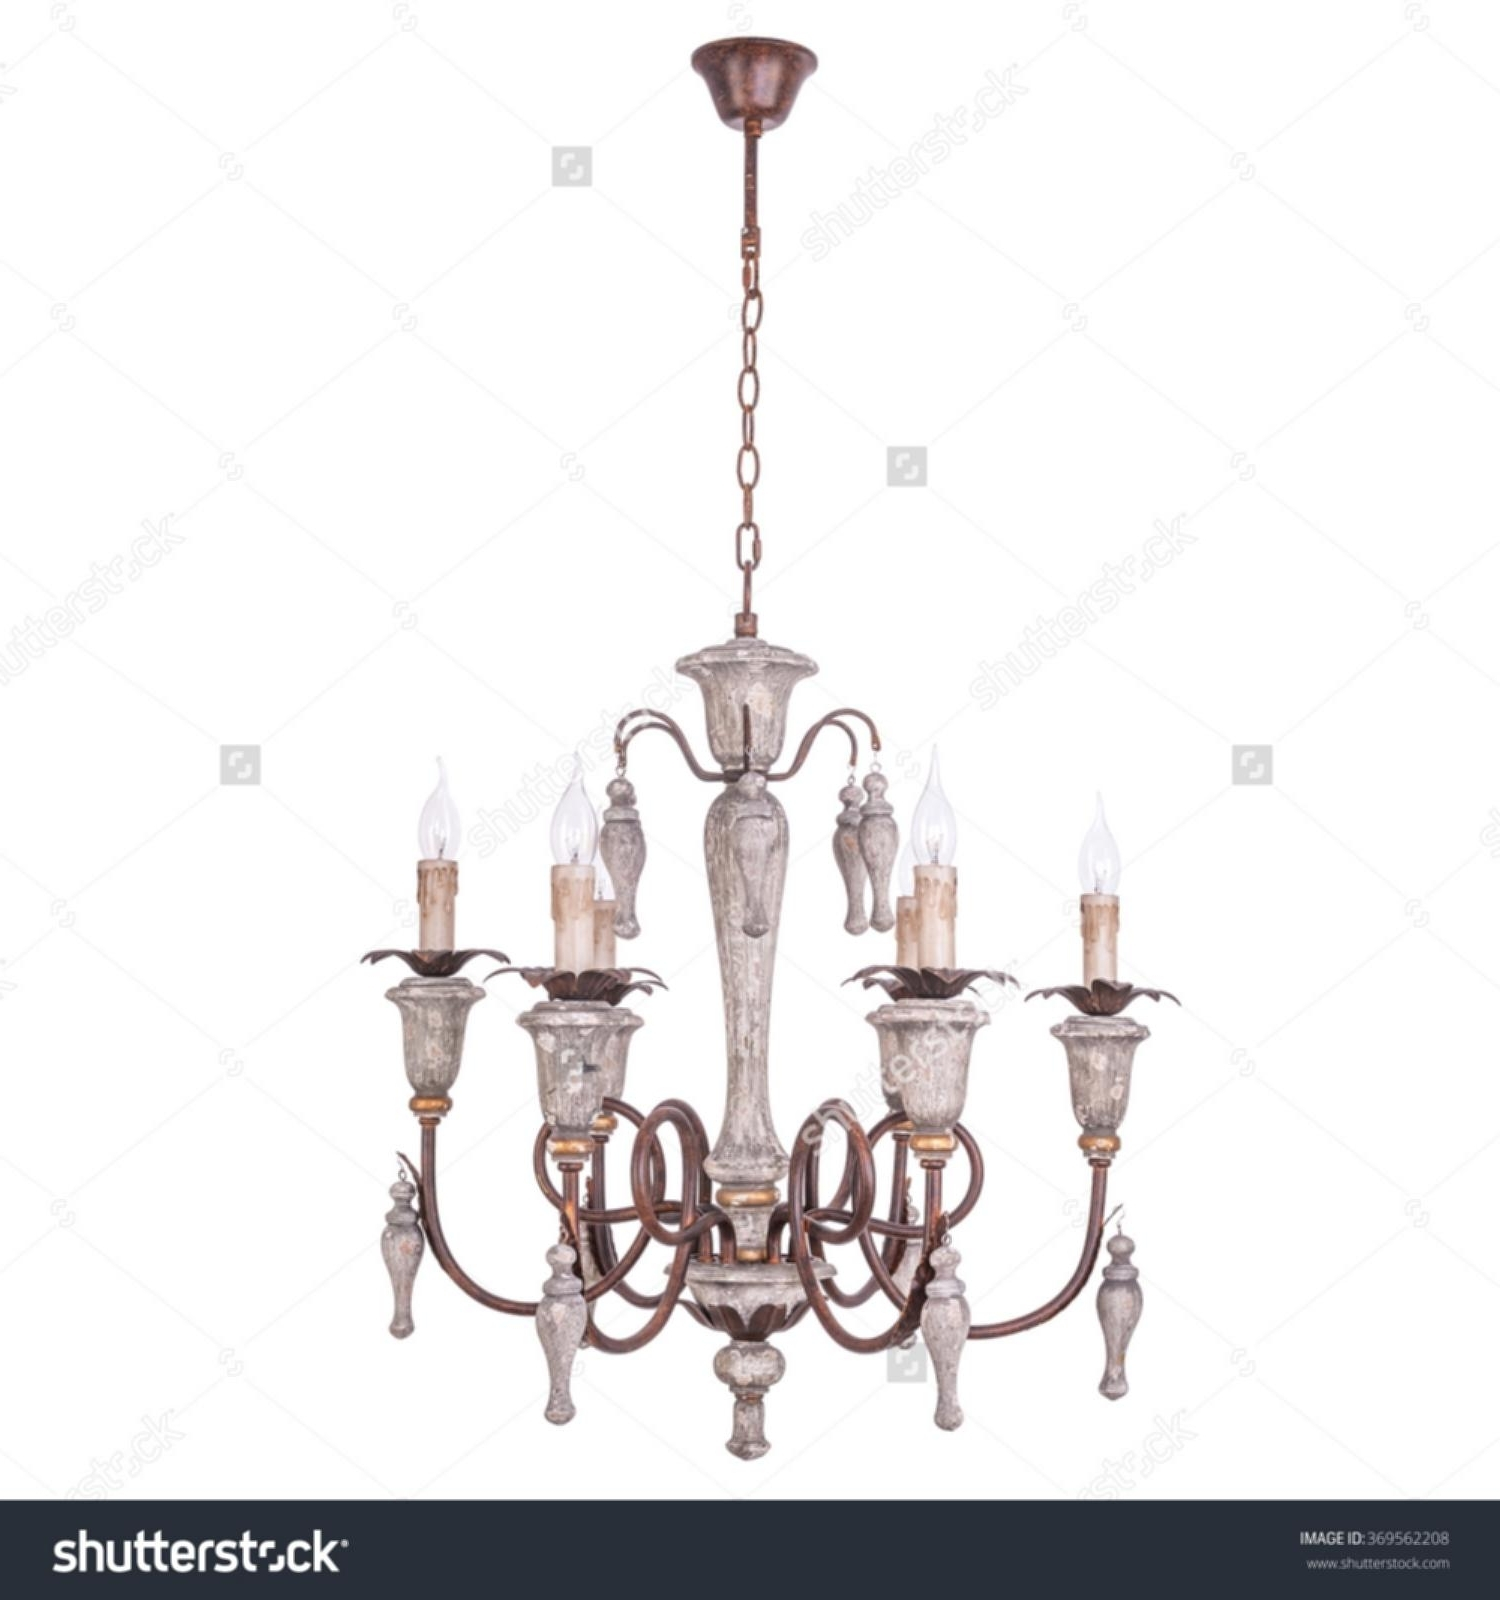 Bryony 9 Light Chandelier Chandelier Vintage Style Isolated On White With Fashionable Vintage Style Chandelier (View 11 of 20)